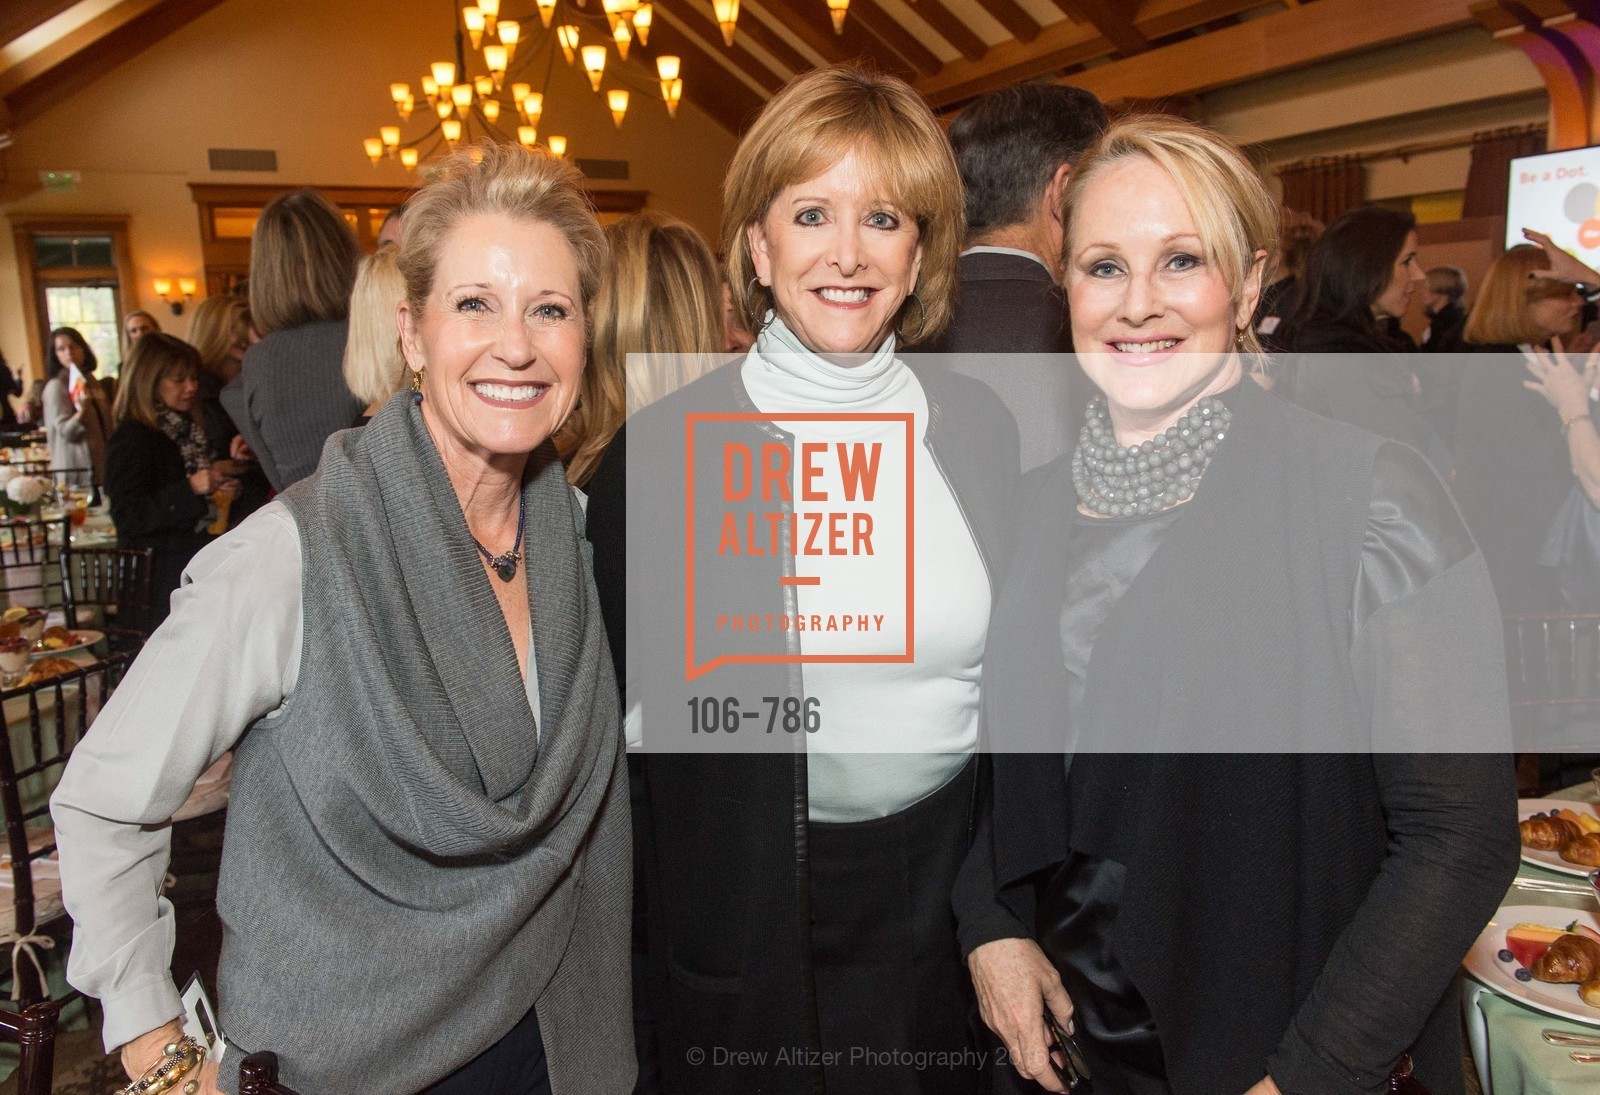 Kim Bland, Betsy Matteson, Debbie Rosenberg, The Children's Health Council Breakfast, Sharon Height Golf and Country Club. 900 Sand Hill Rd, February 2nd, 2016,Drew Altizer, Drew Altizer Photography, full-service agency, private events, San Francisco photographer, photographer california